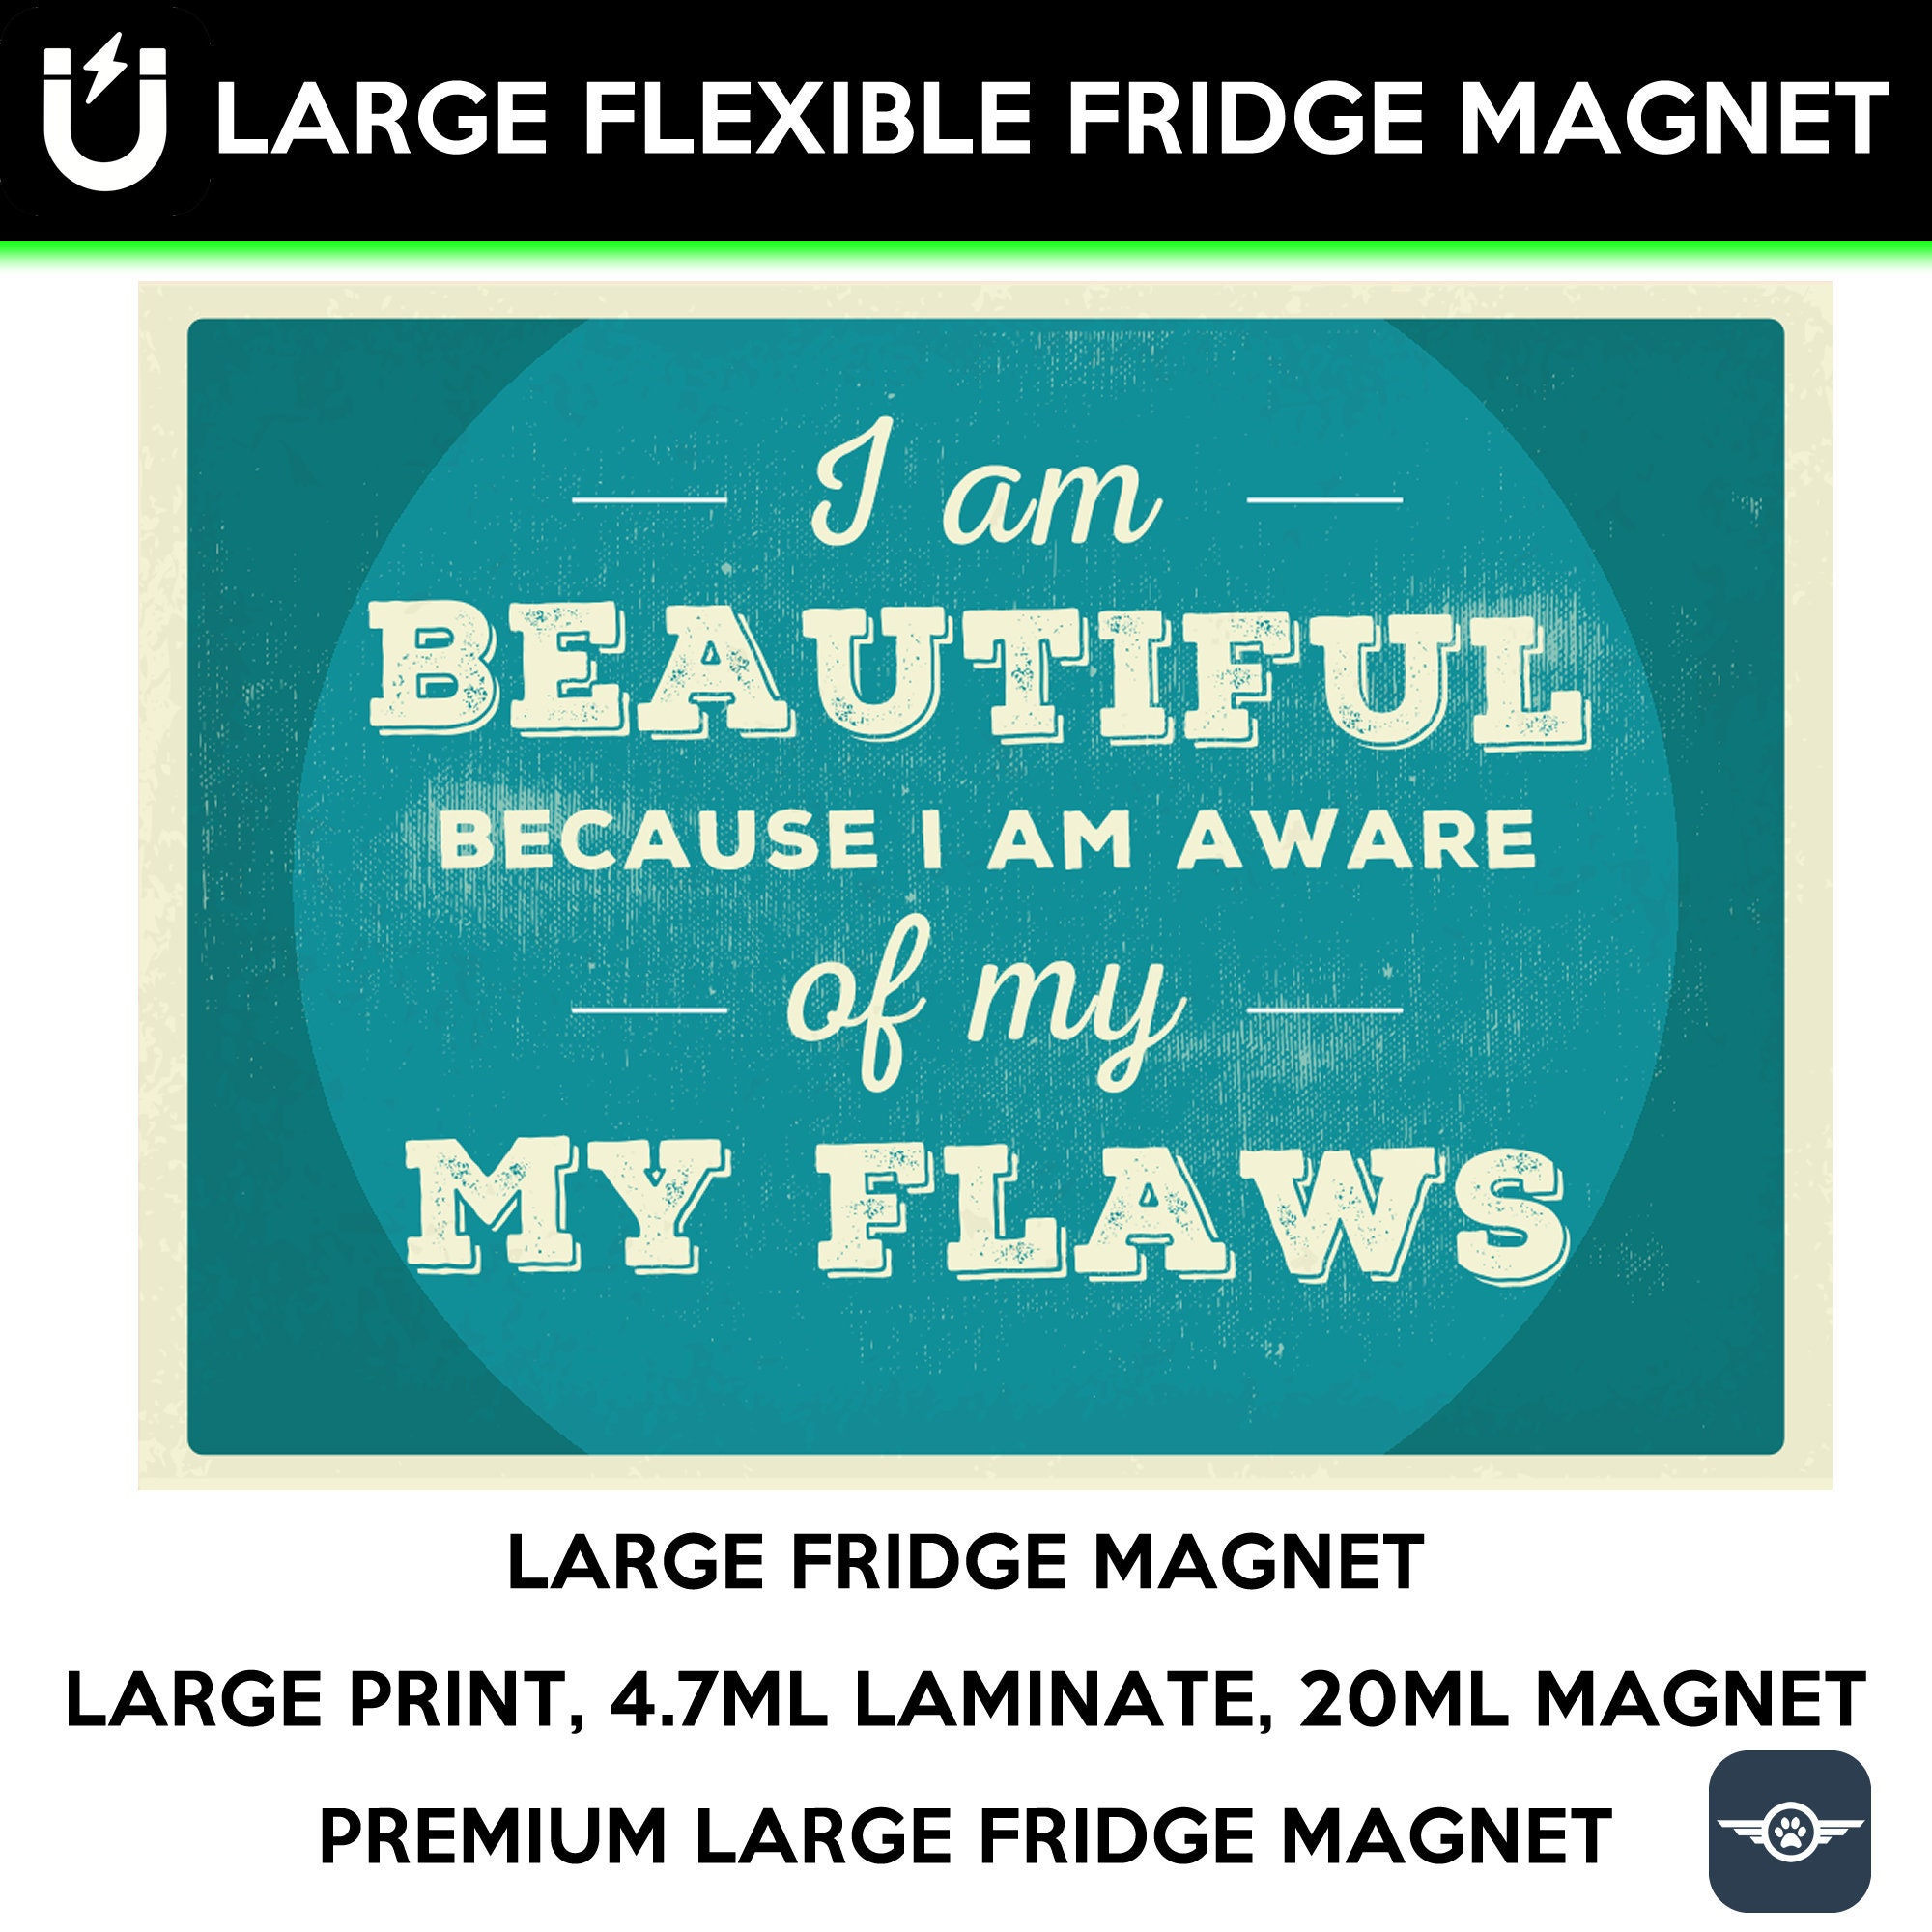 I am beautiful because i am aware of my flaws inspirational fridge magnet 6.5 inch x 9 inch motivational premium large magnet